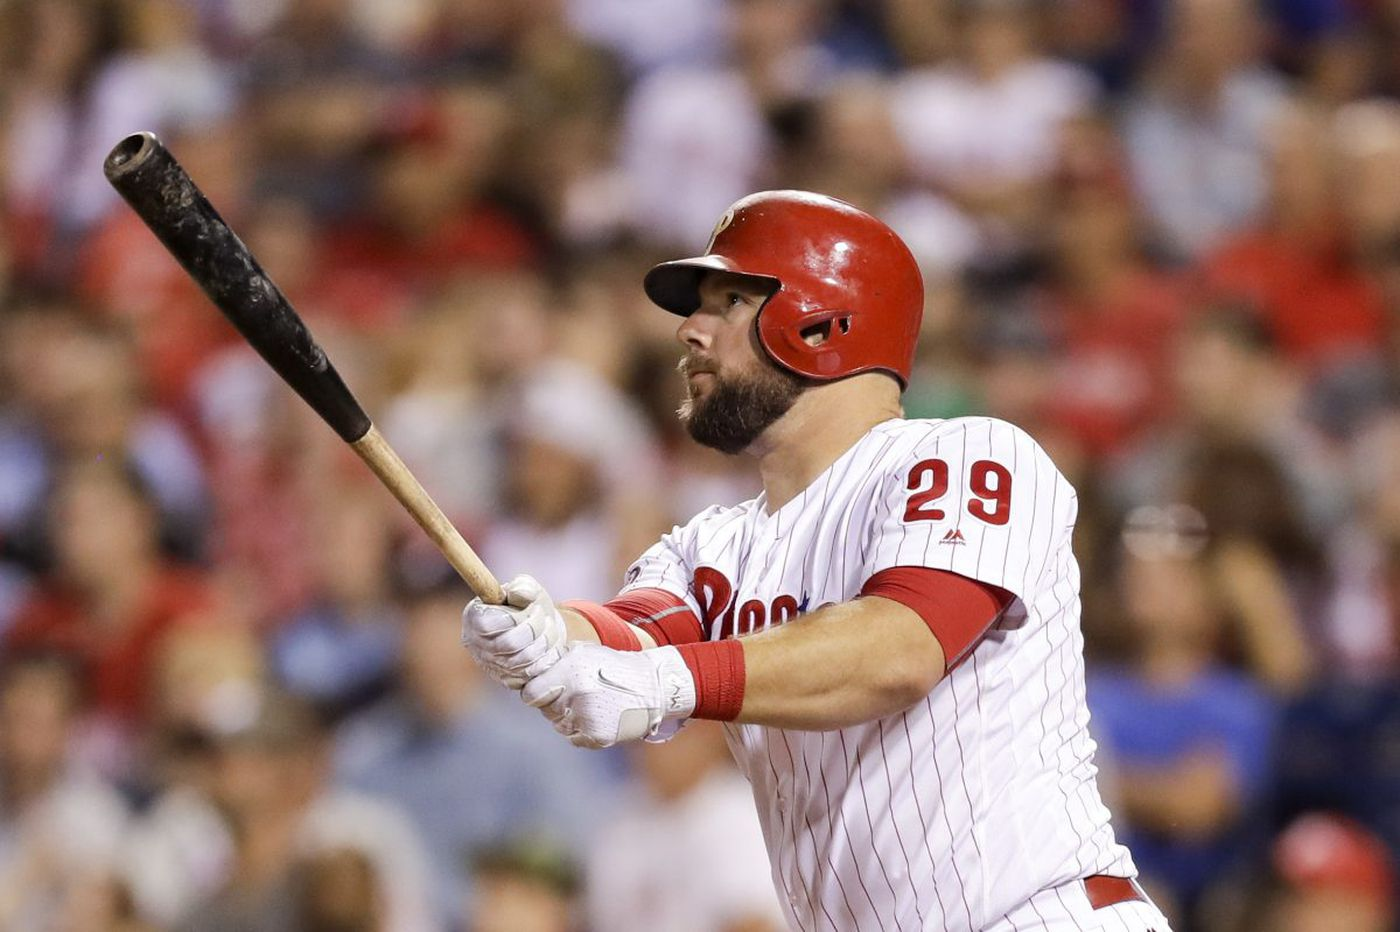 Phillies re-sign Cameron Rupp to $2.05 million deal